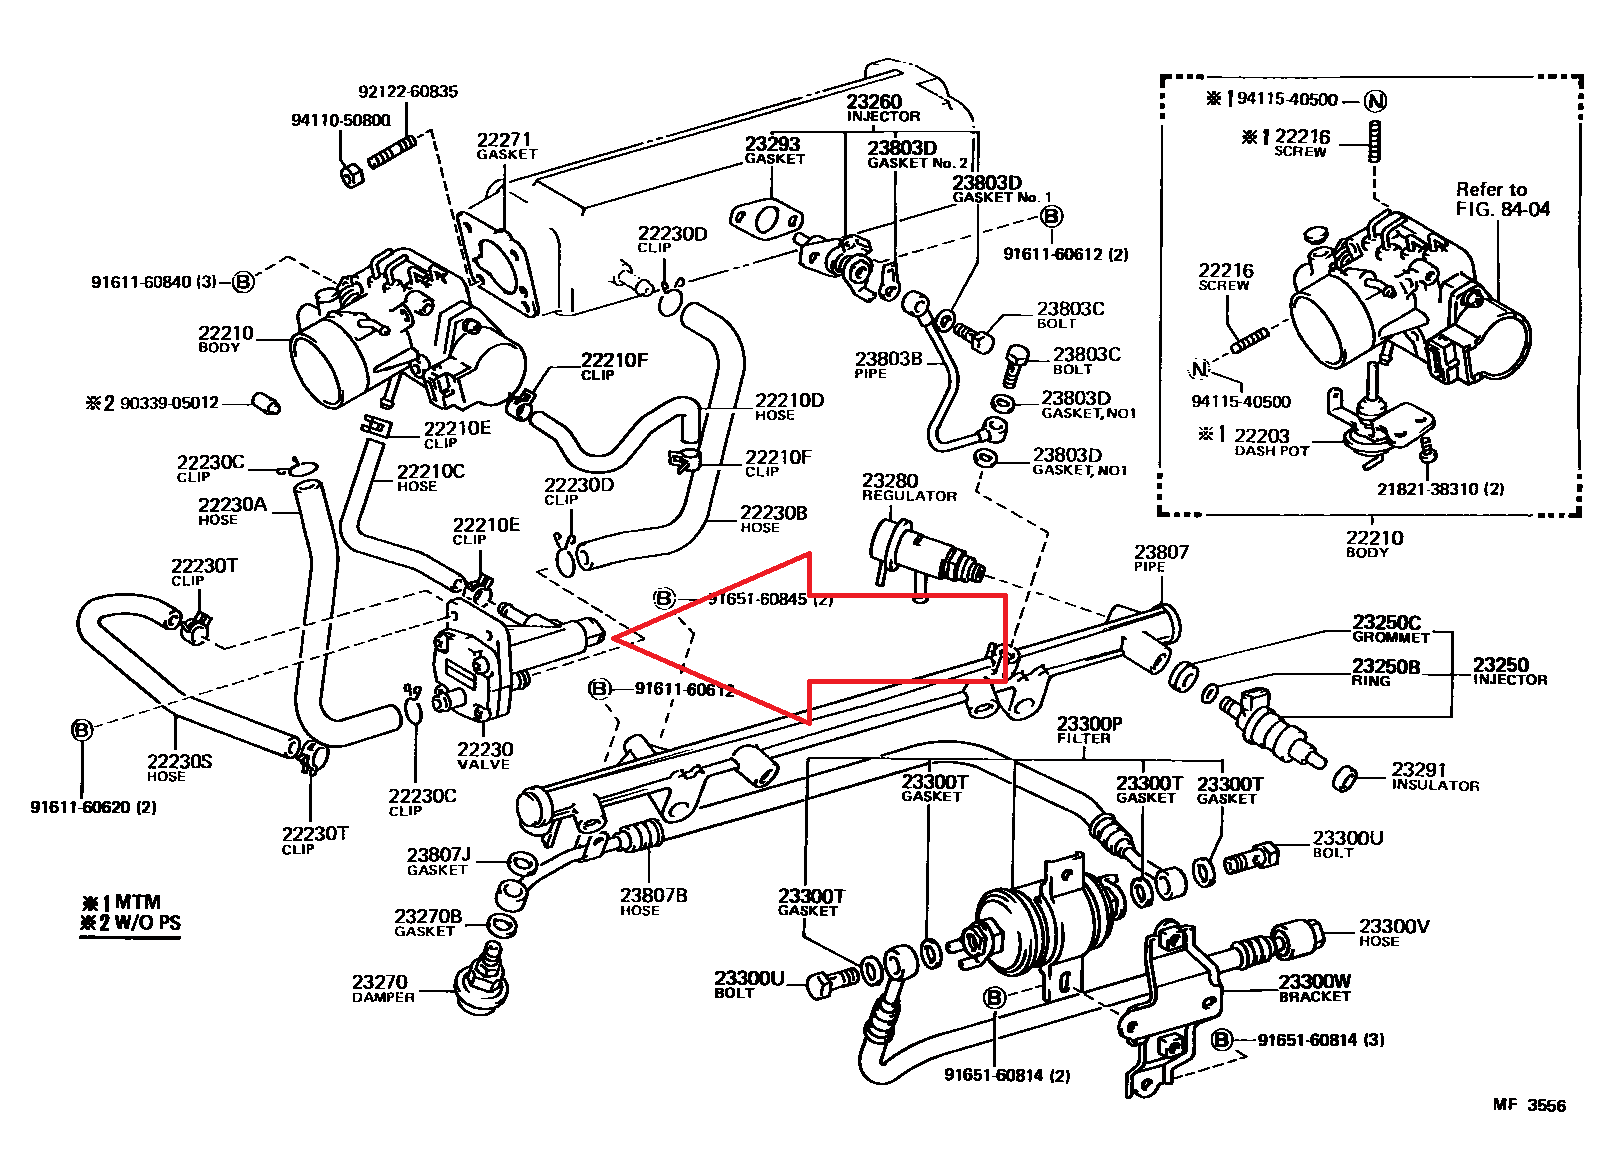 Niac on Clutch Master Cylinder Schematic